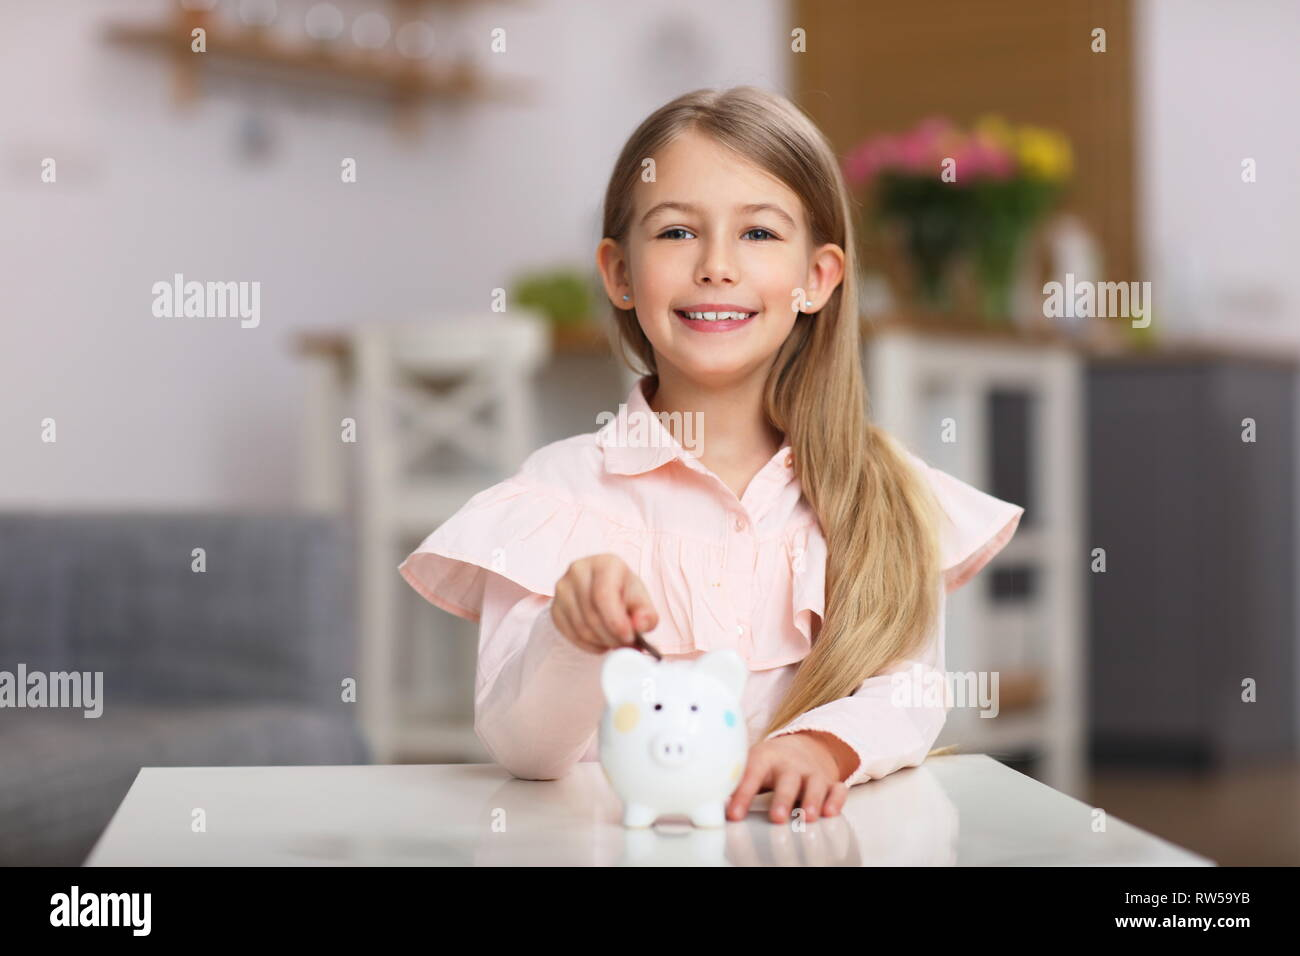 Young girl with piggybank sitting at table - Stock Image